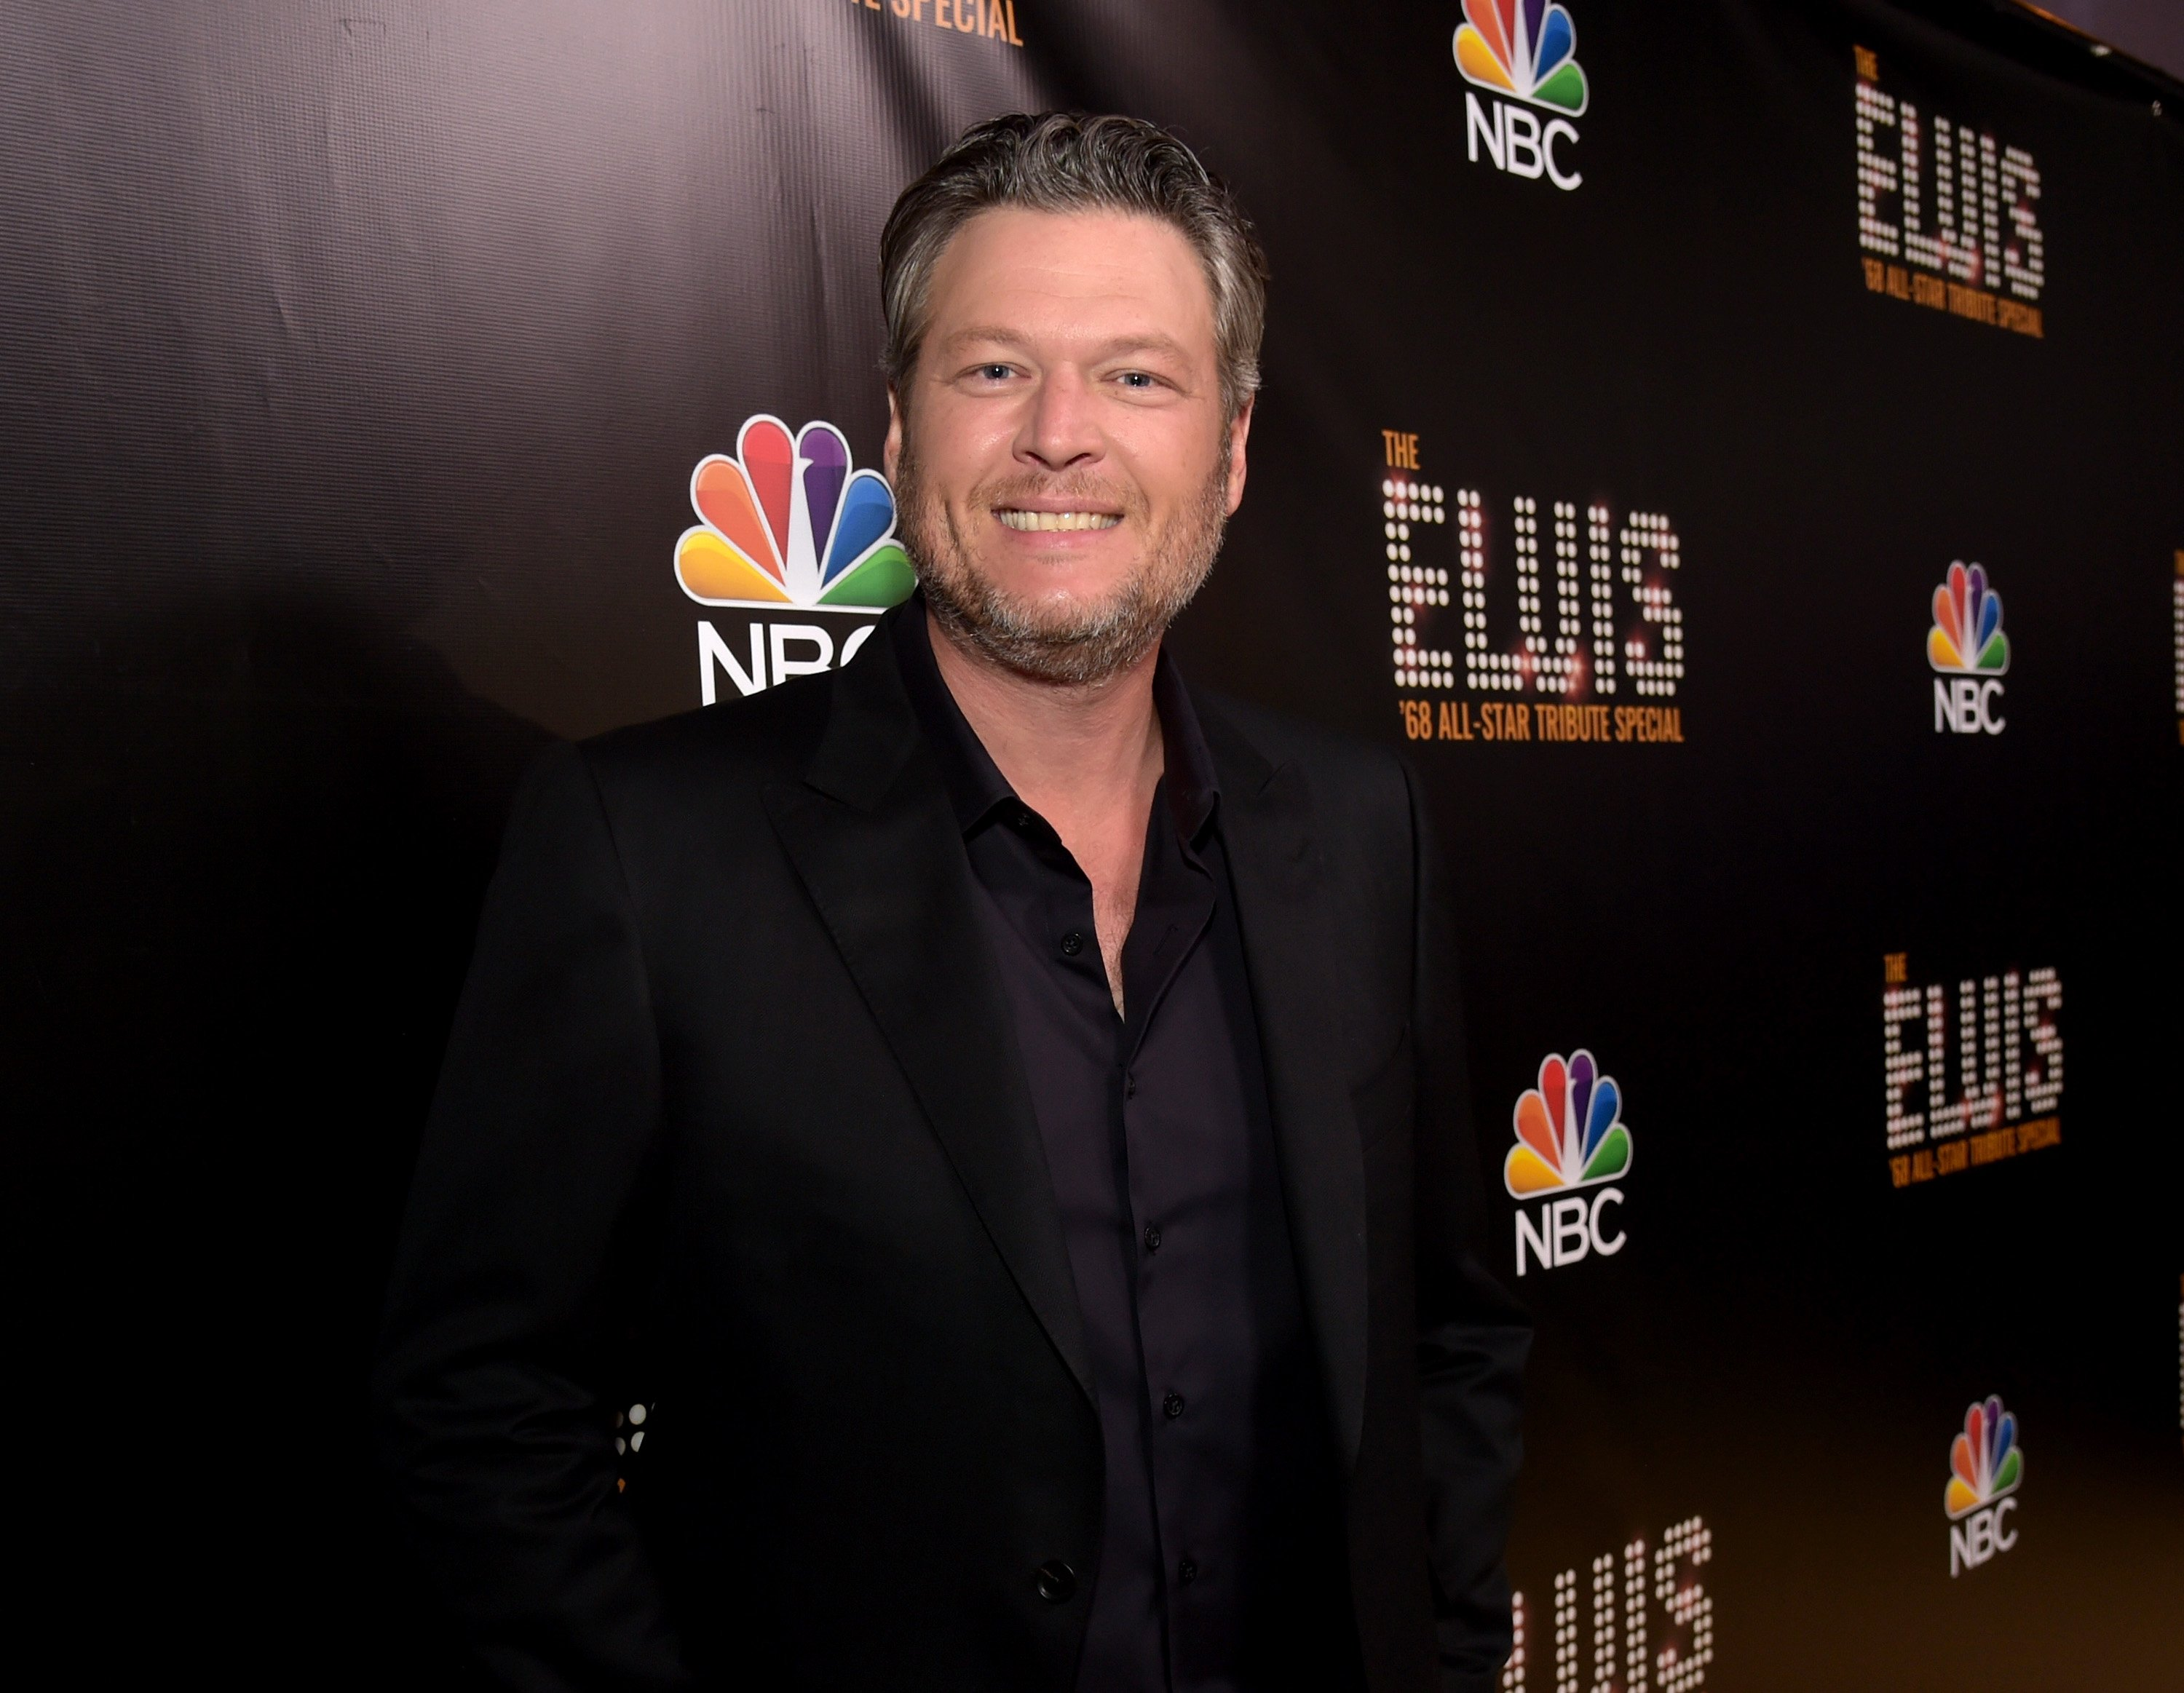 Blake Shelton appears backstage during The Elvis '68 All-Star Tribute Special at Universal Studios on October 11, 2018, in Universal City, California. | Source: Getty Images.